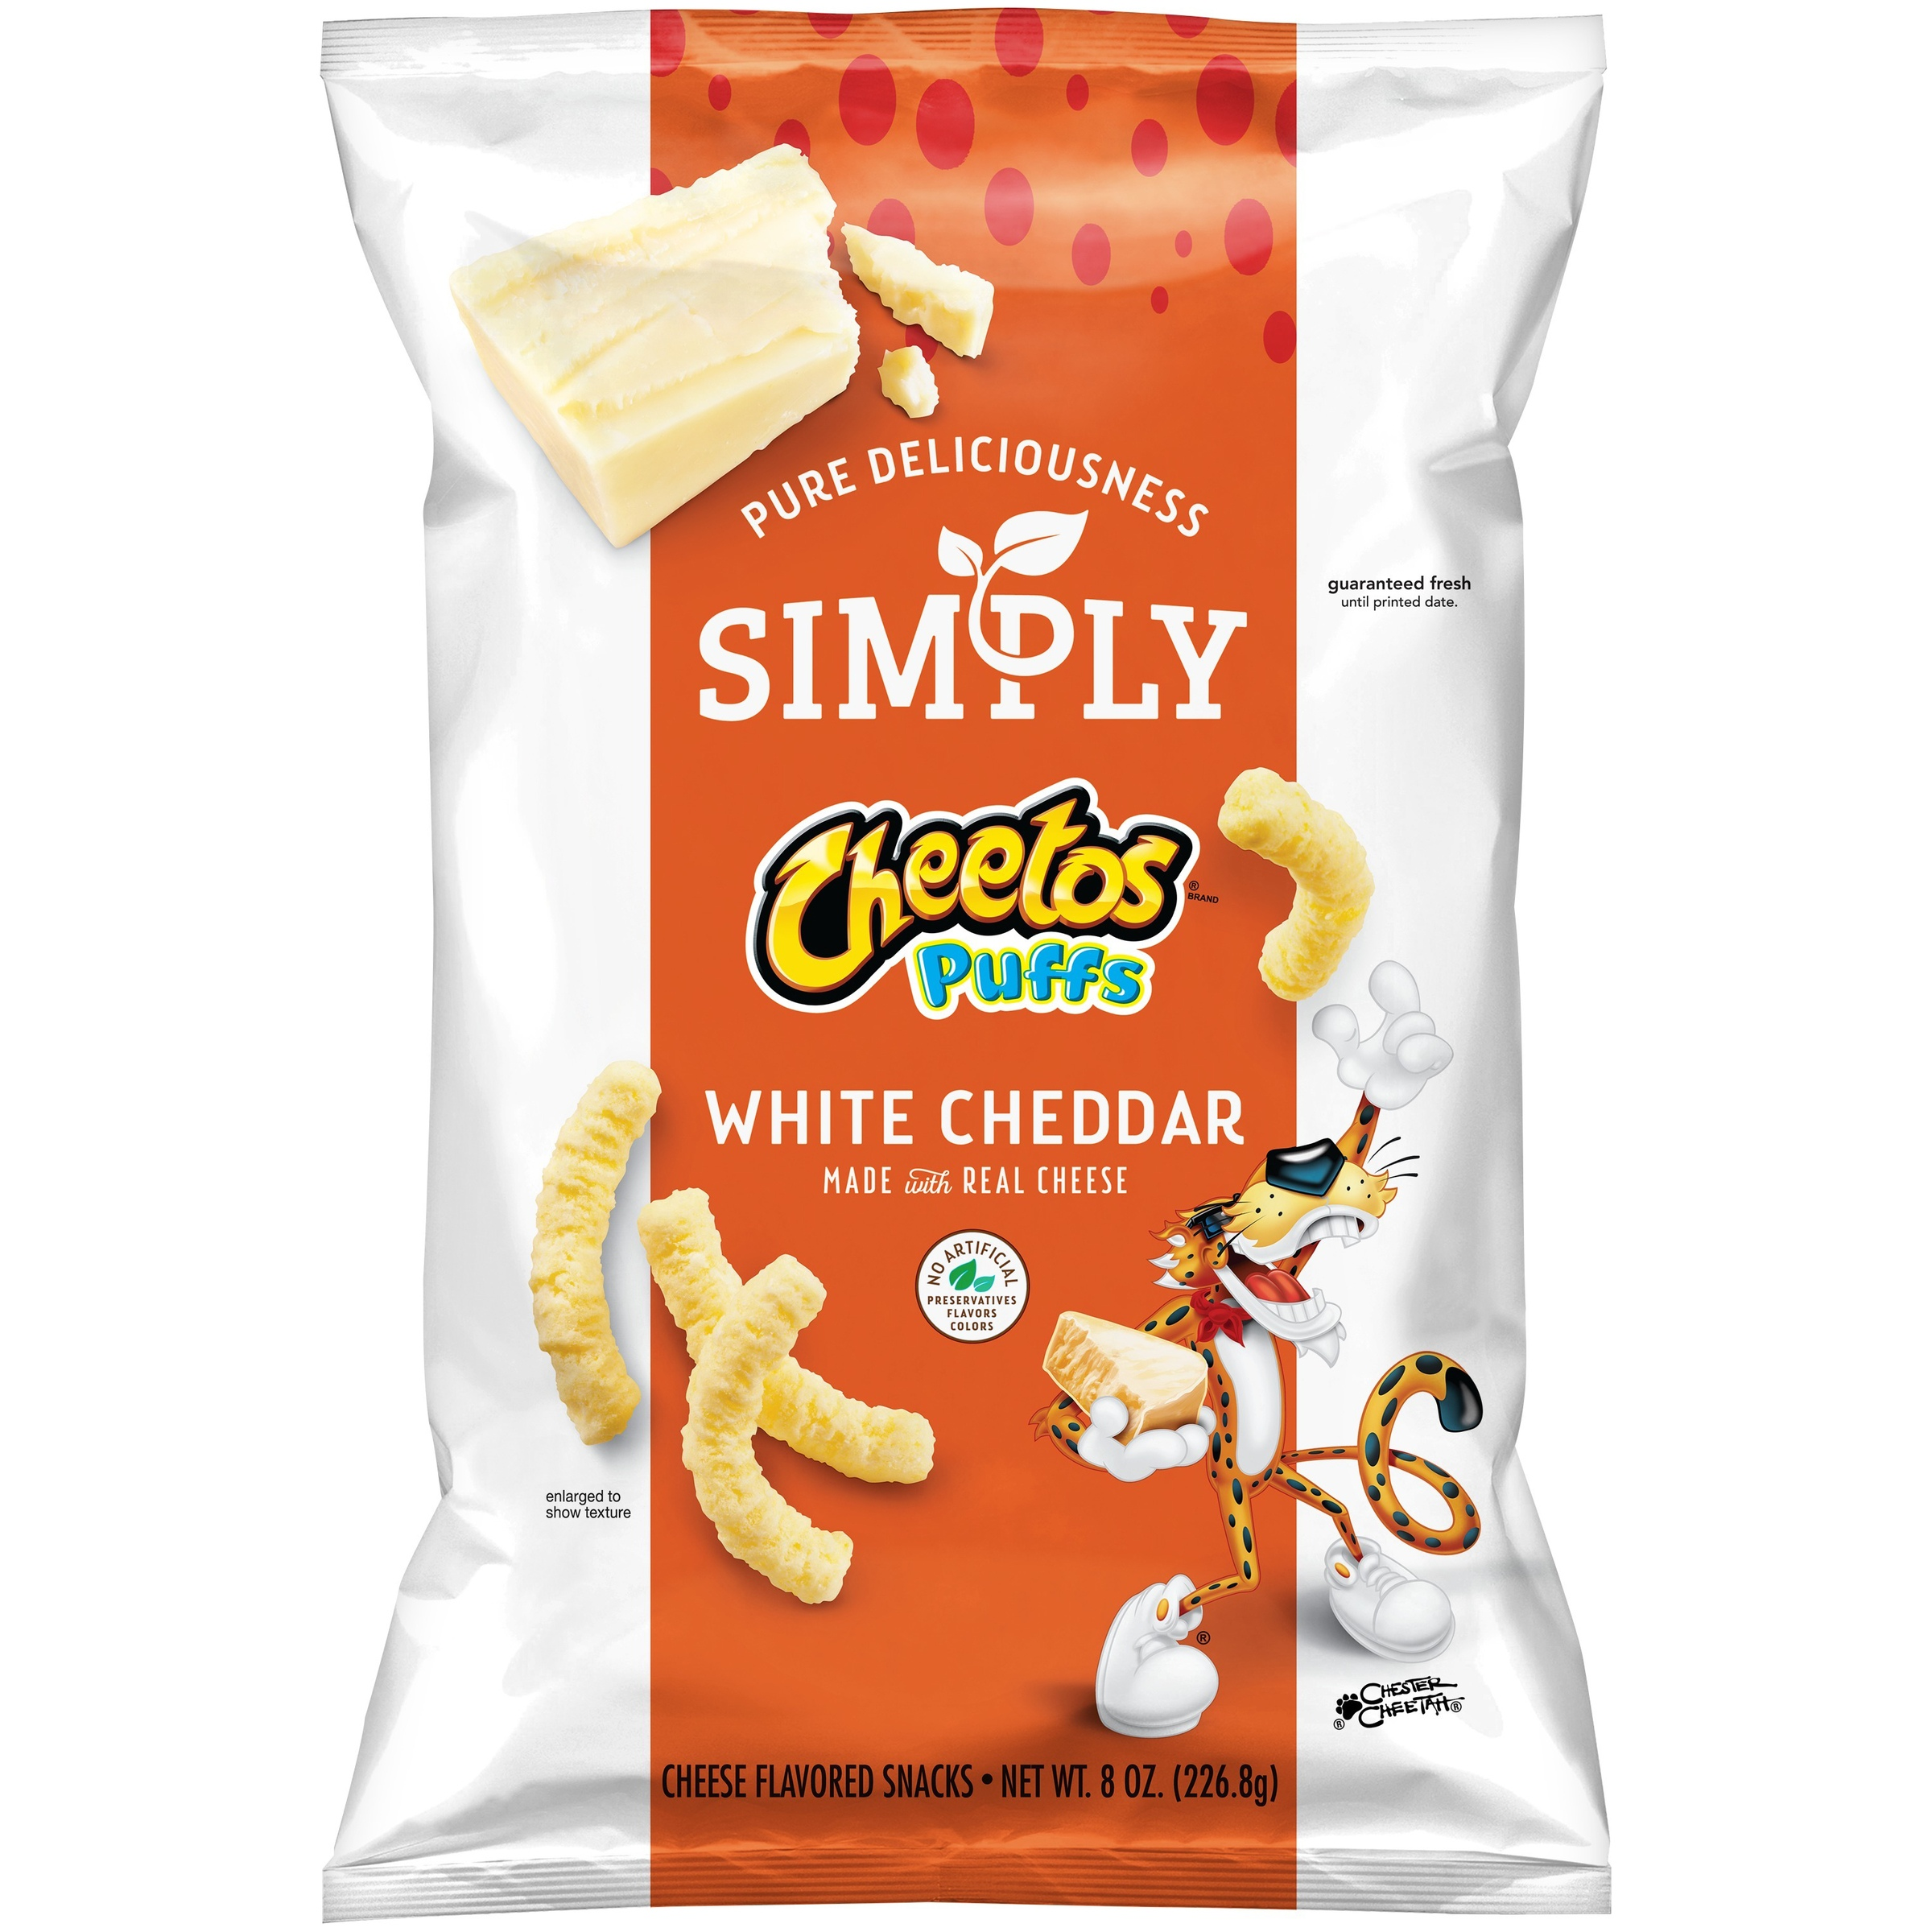 Simply Cheetos Puffs Cheese Flavored Snacks, White Cheddar, 8 Oz